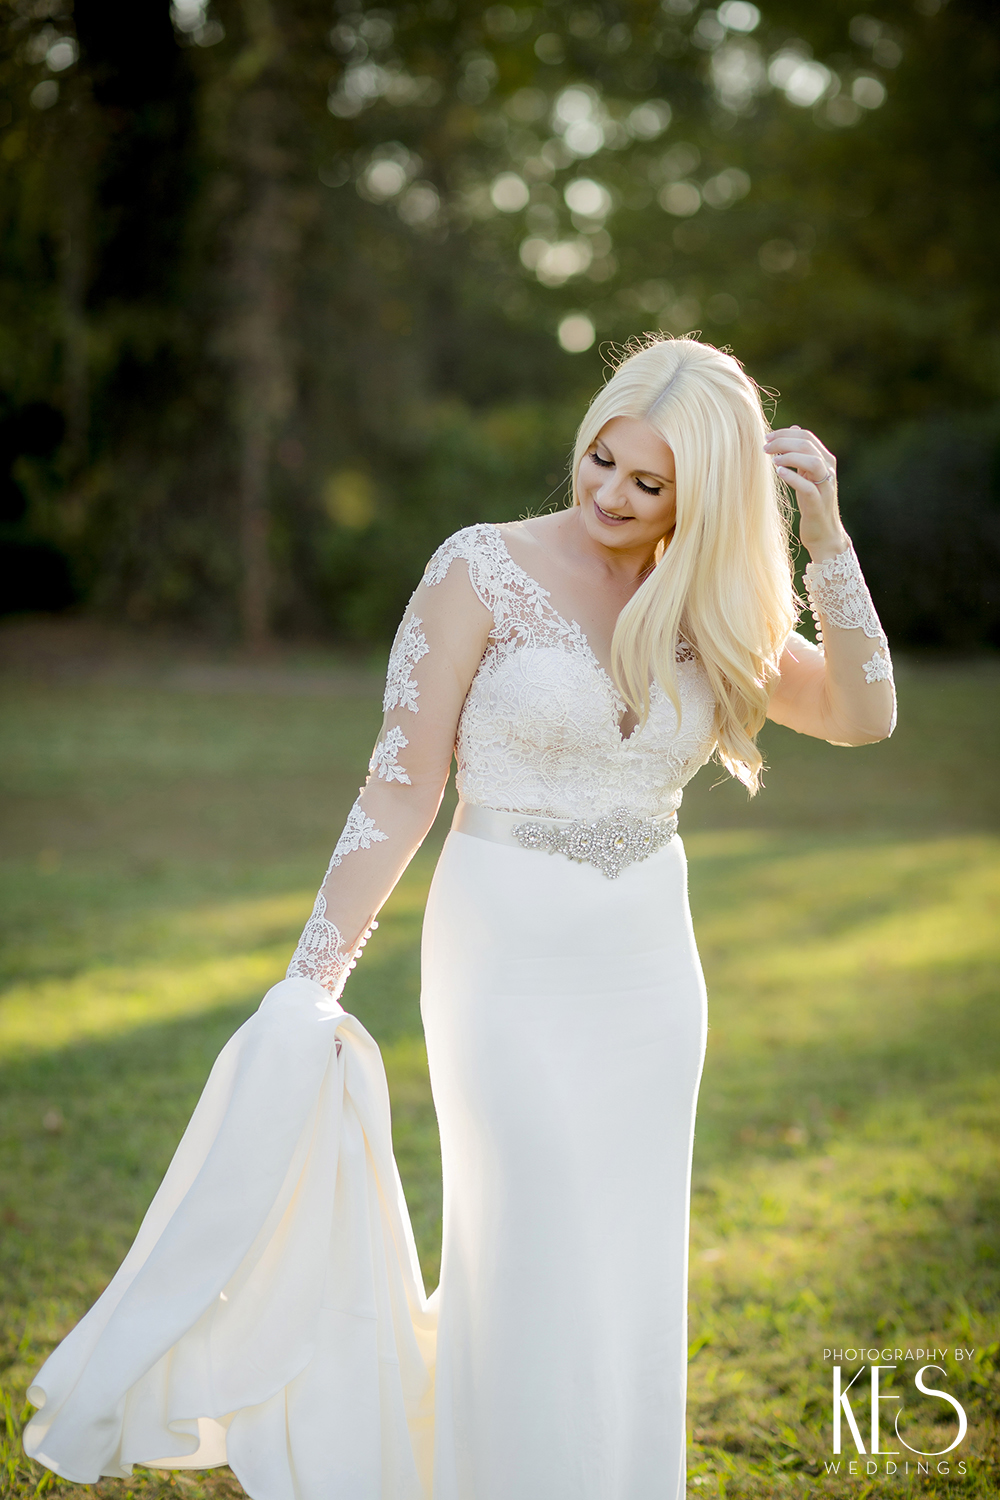 Marlsgate_Bridals_KES_Weddings_19.JPG